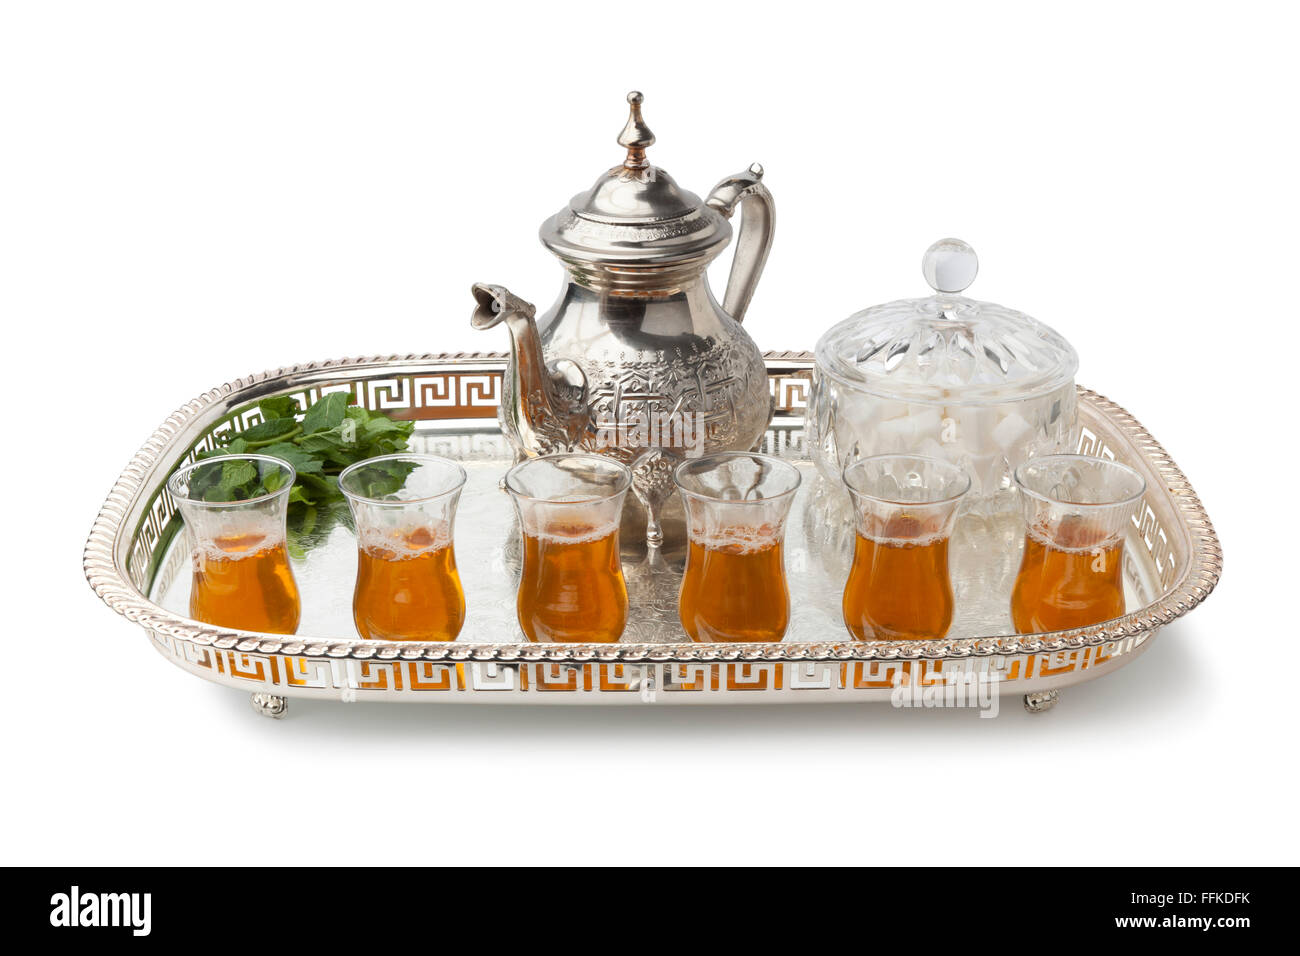 Tray with traditional Moroccan mint tea on white background - Stock Image